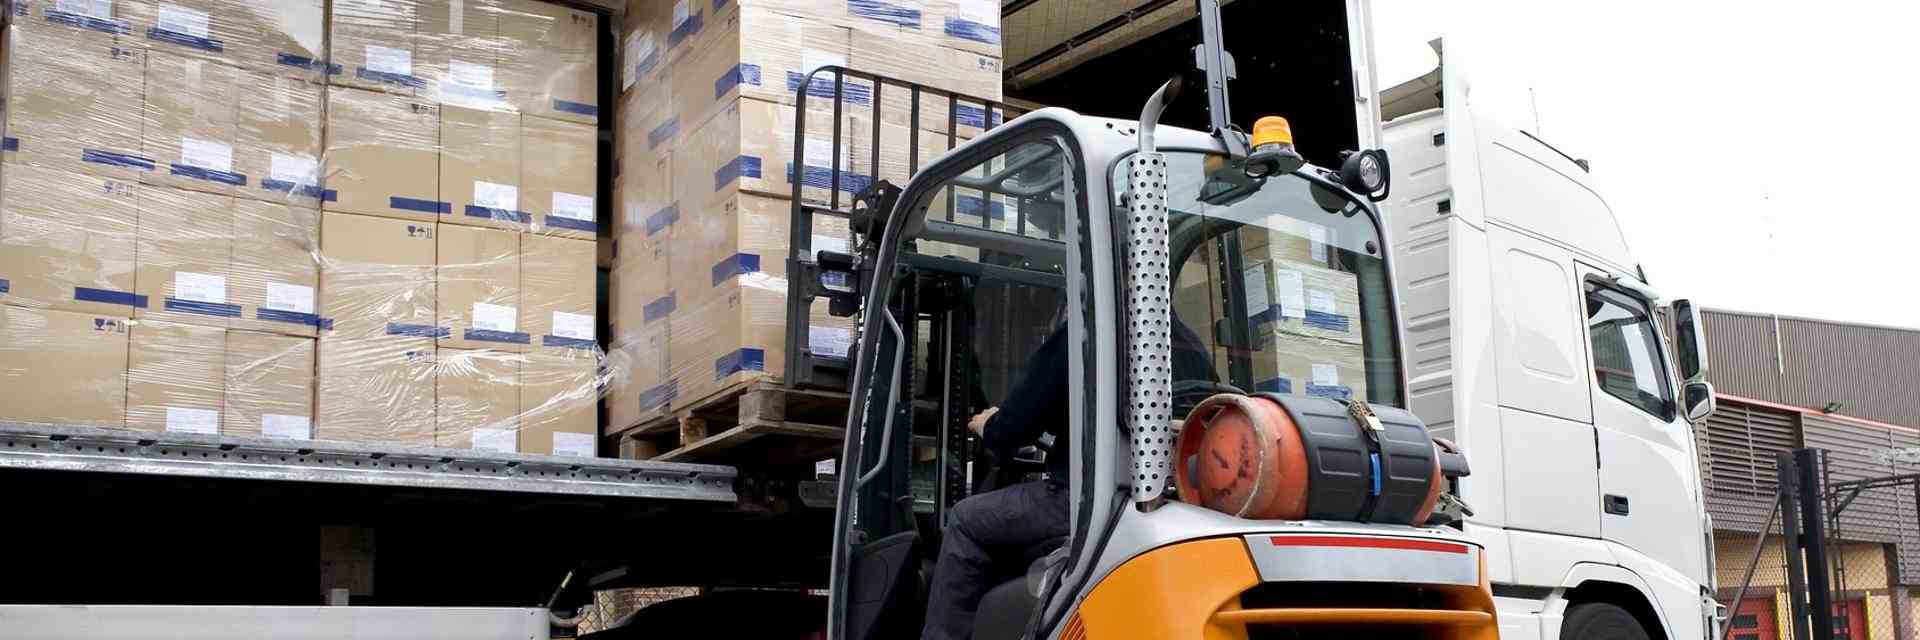 Pallet Delivery Service in Tamworth - Pallet Distribution